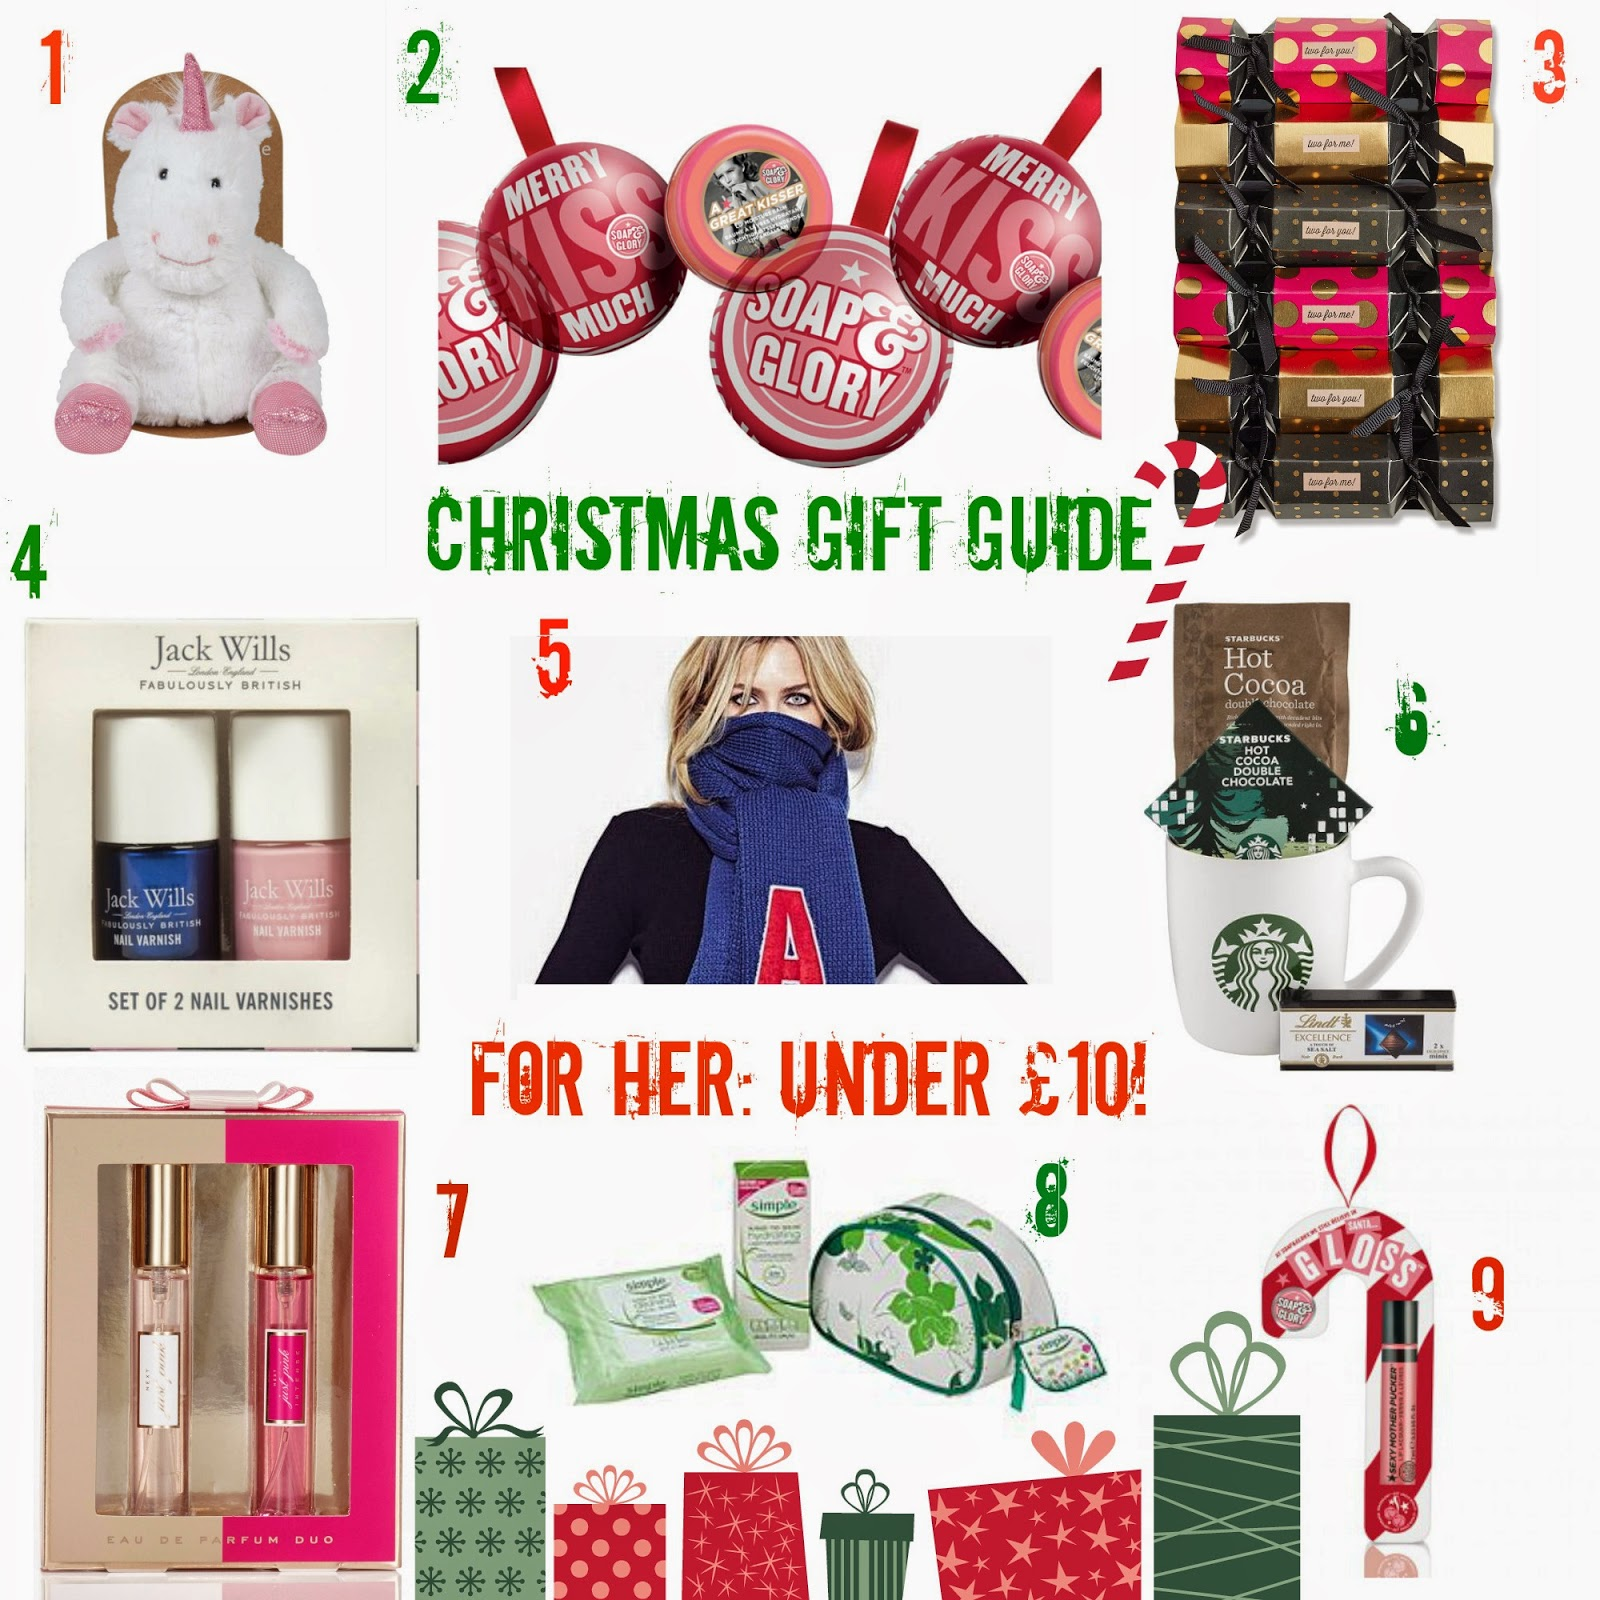 15 amazing Christmas gifts under £10 Turns out a tenner can go quite a long way. Whether you are on the hunt for great stocking fillers or trying to stick to a tight .